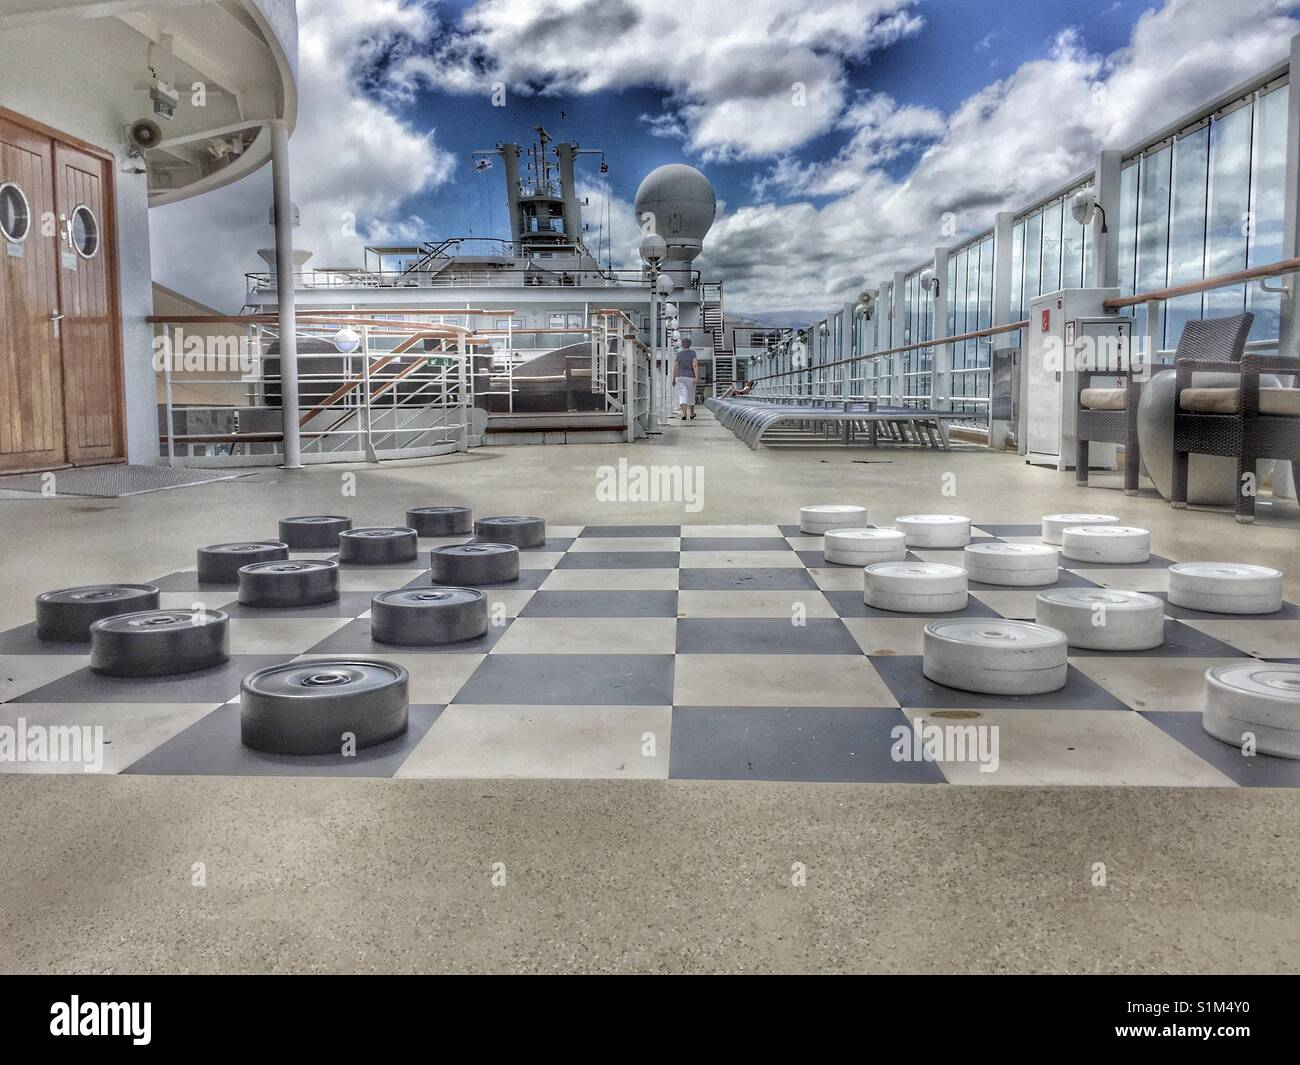 Giant checkers / draughts board game on outdoor deck of cruise ship. Outside active onboard cruise ship - Stock Image